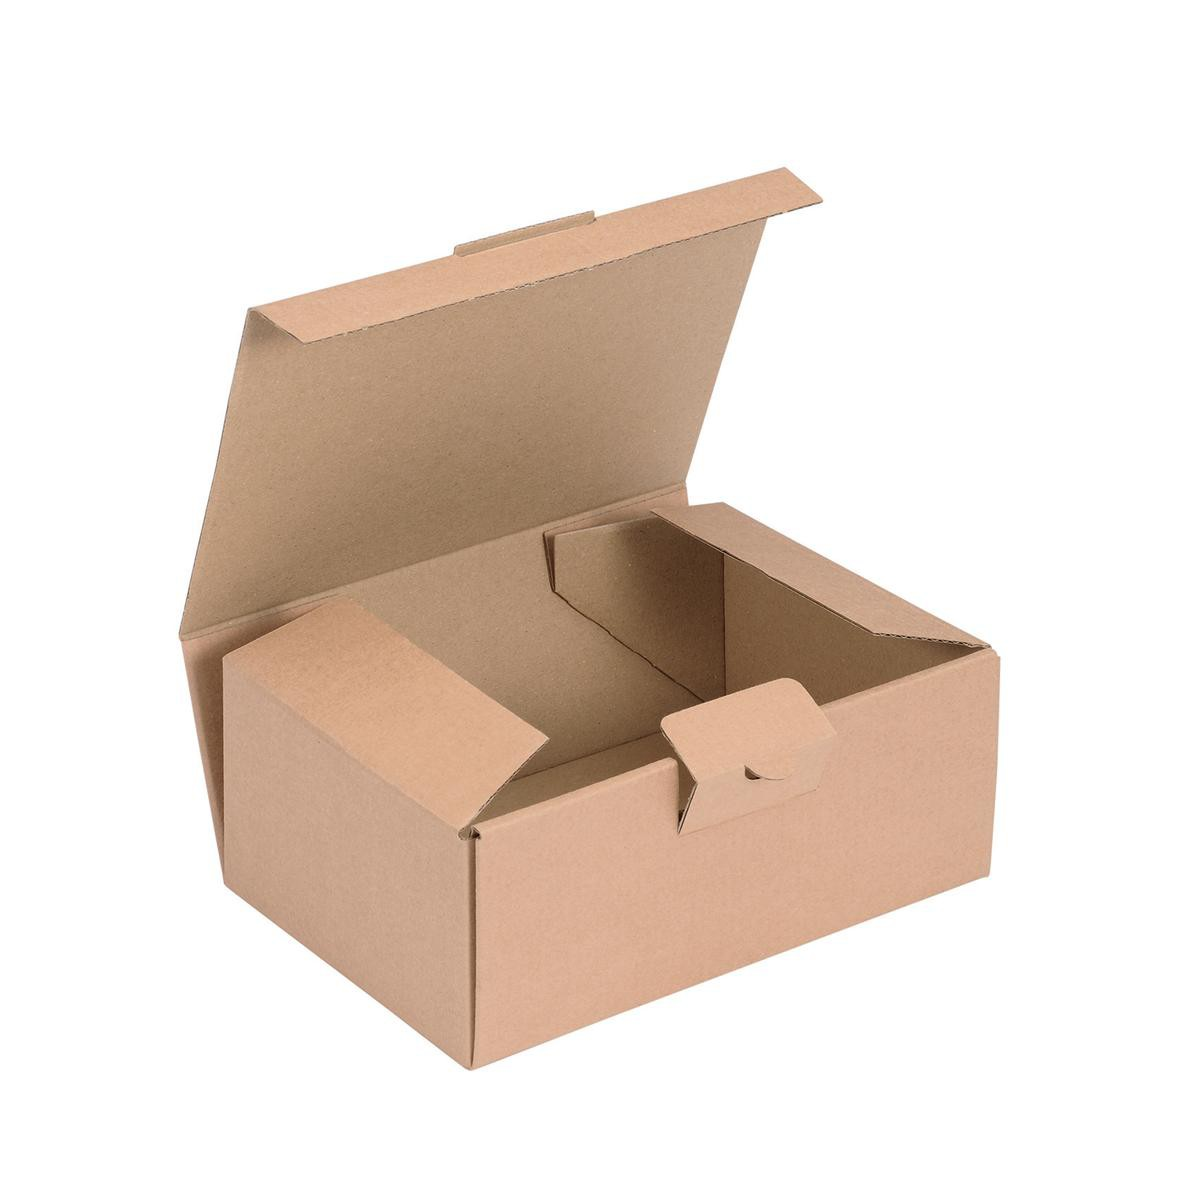 Postal boxes with dimensions - Internal 192x155x91mm External 212x161x96mm